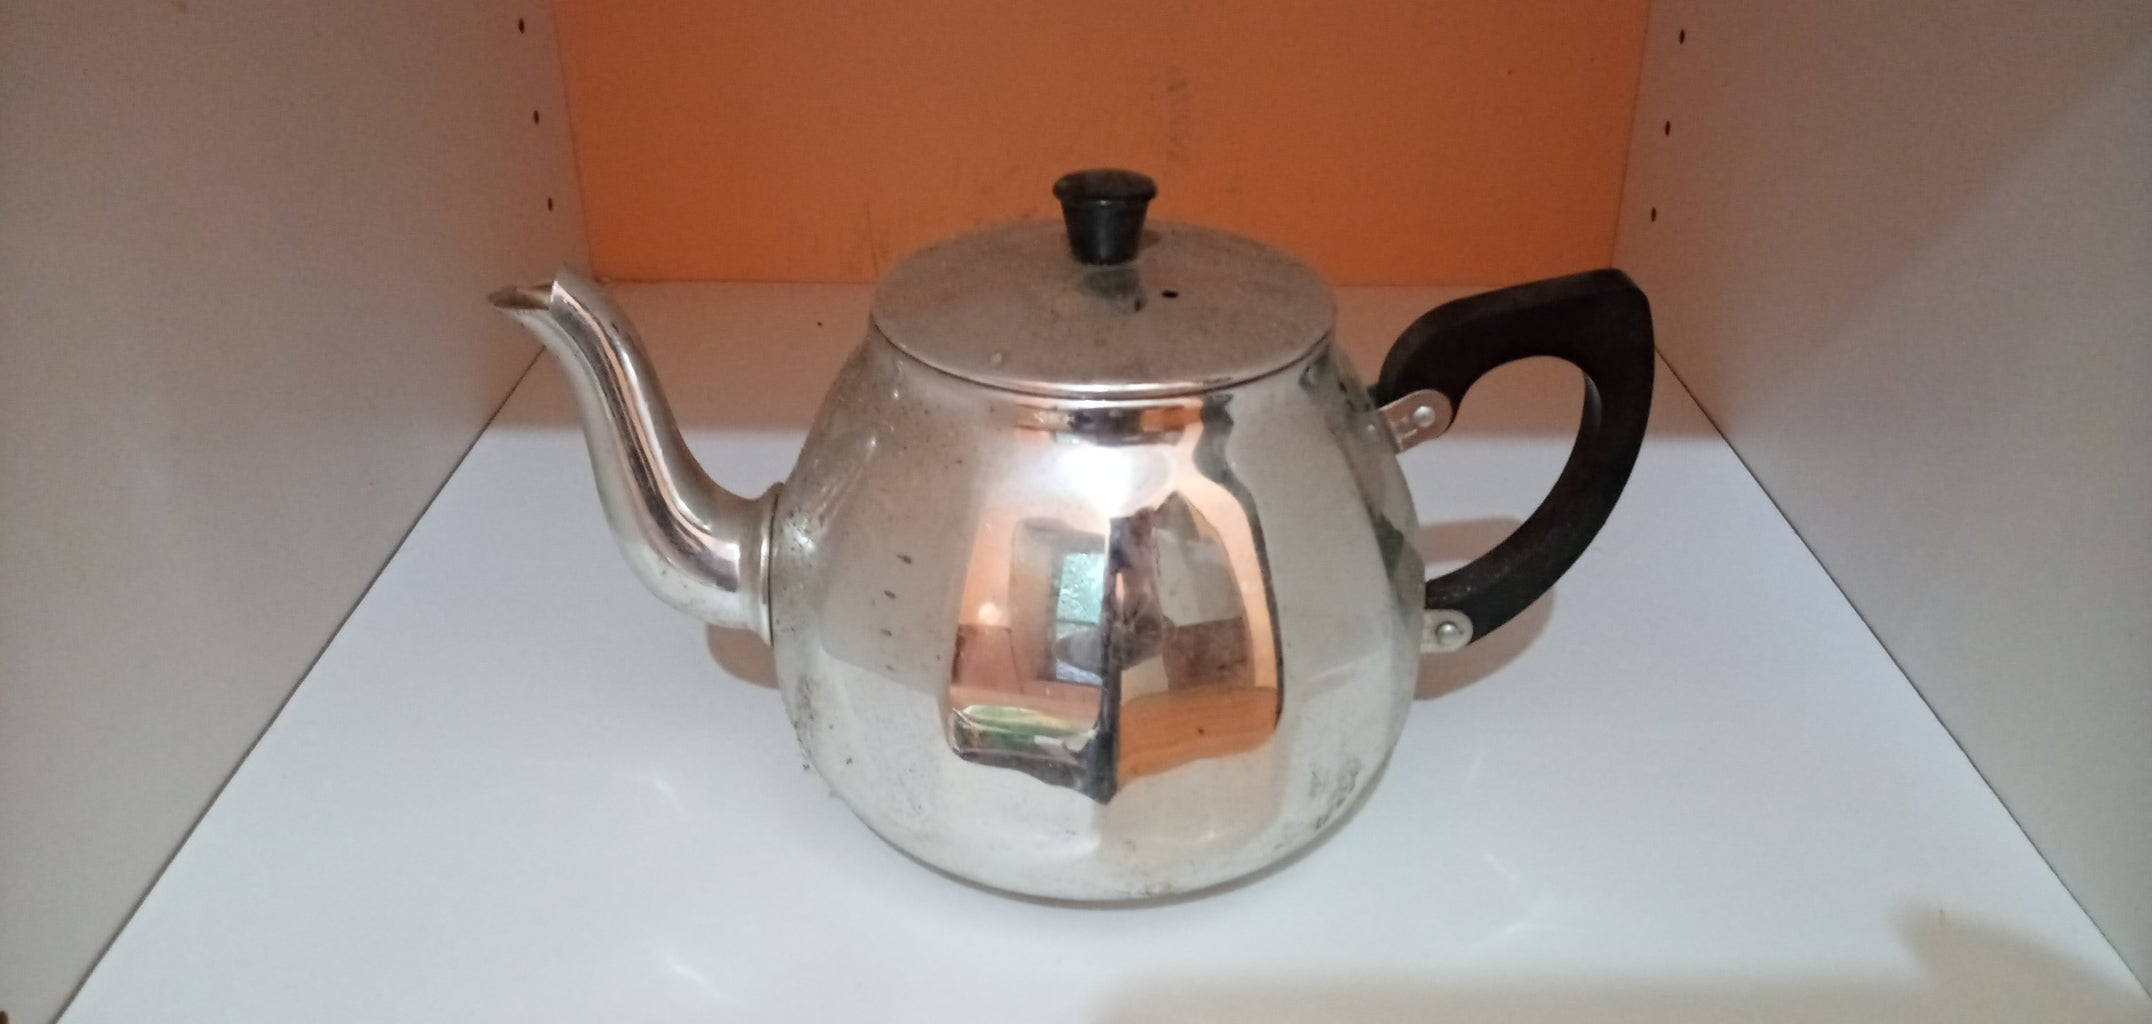 Dissect Your Teapot